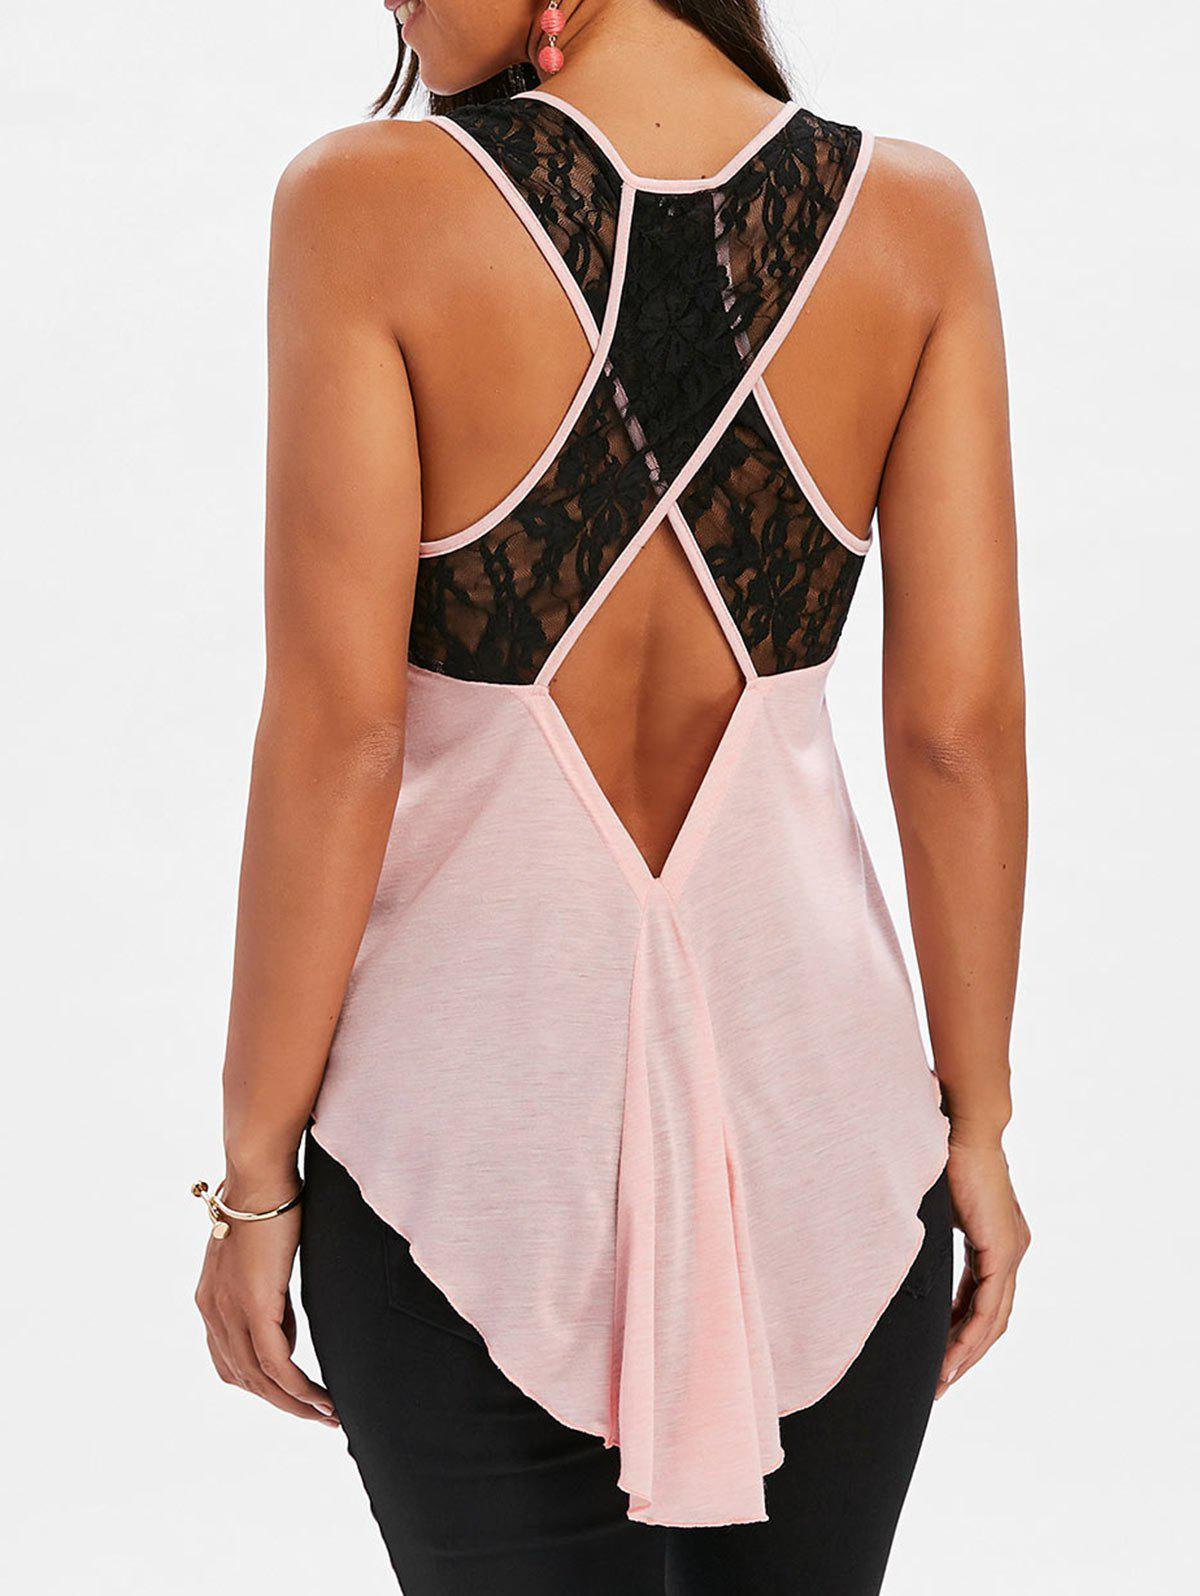 Criss Cross Lace Insert Tank Top - PINK BUBBLEGUM M